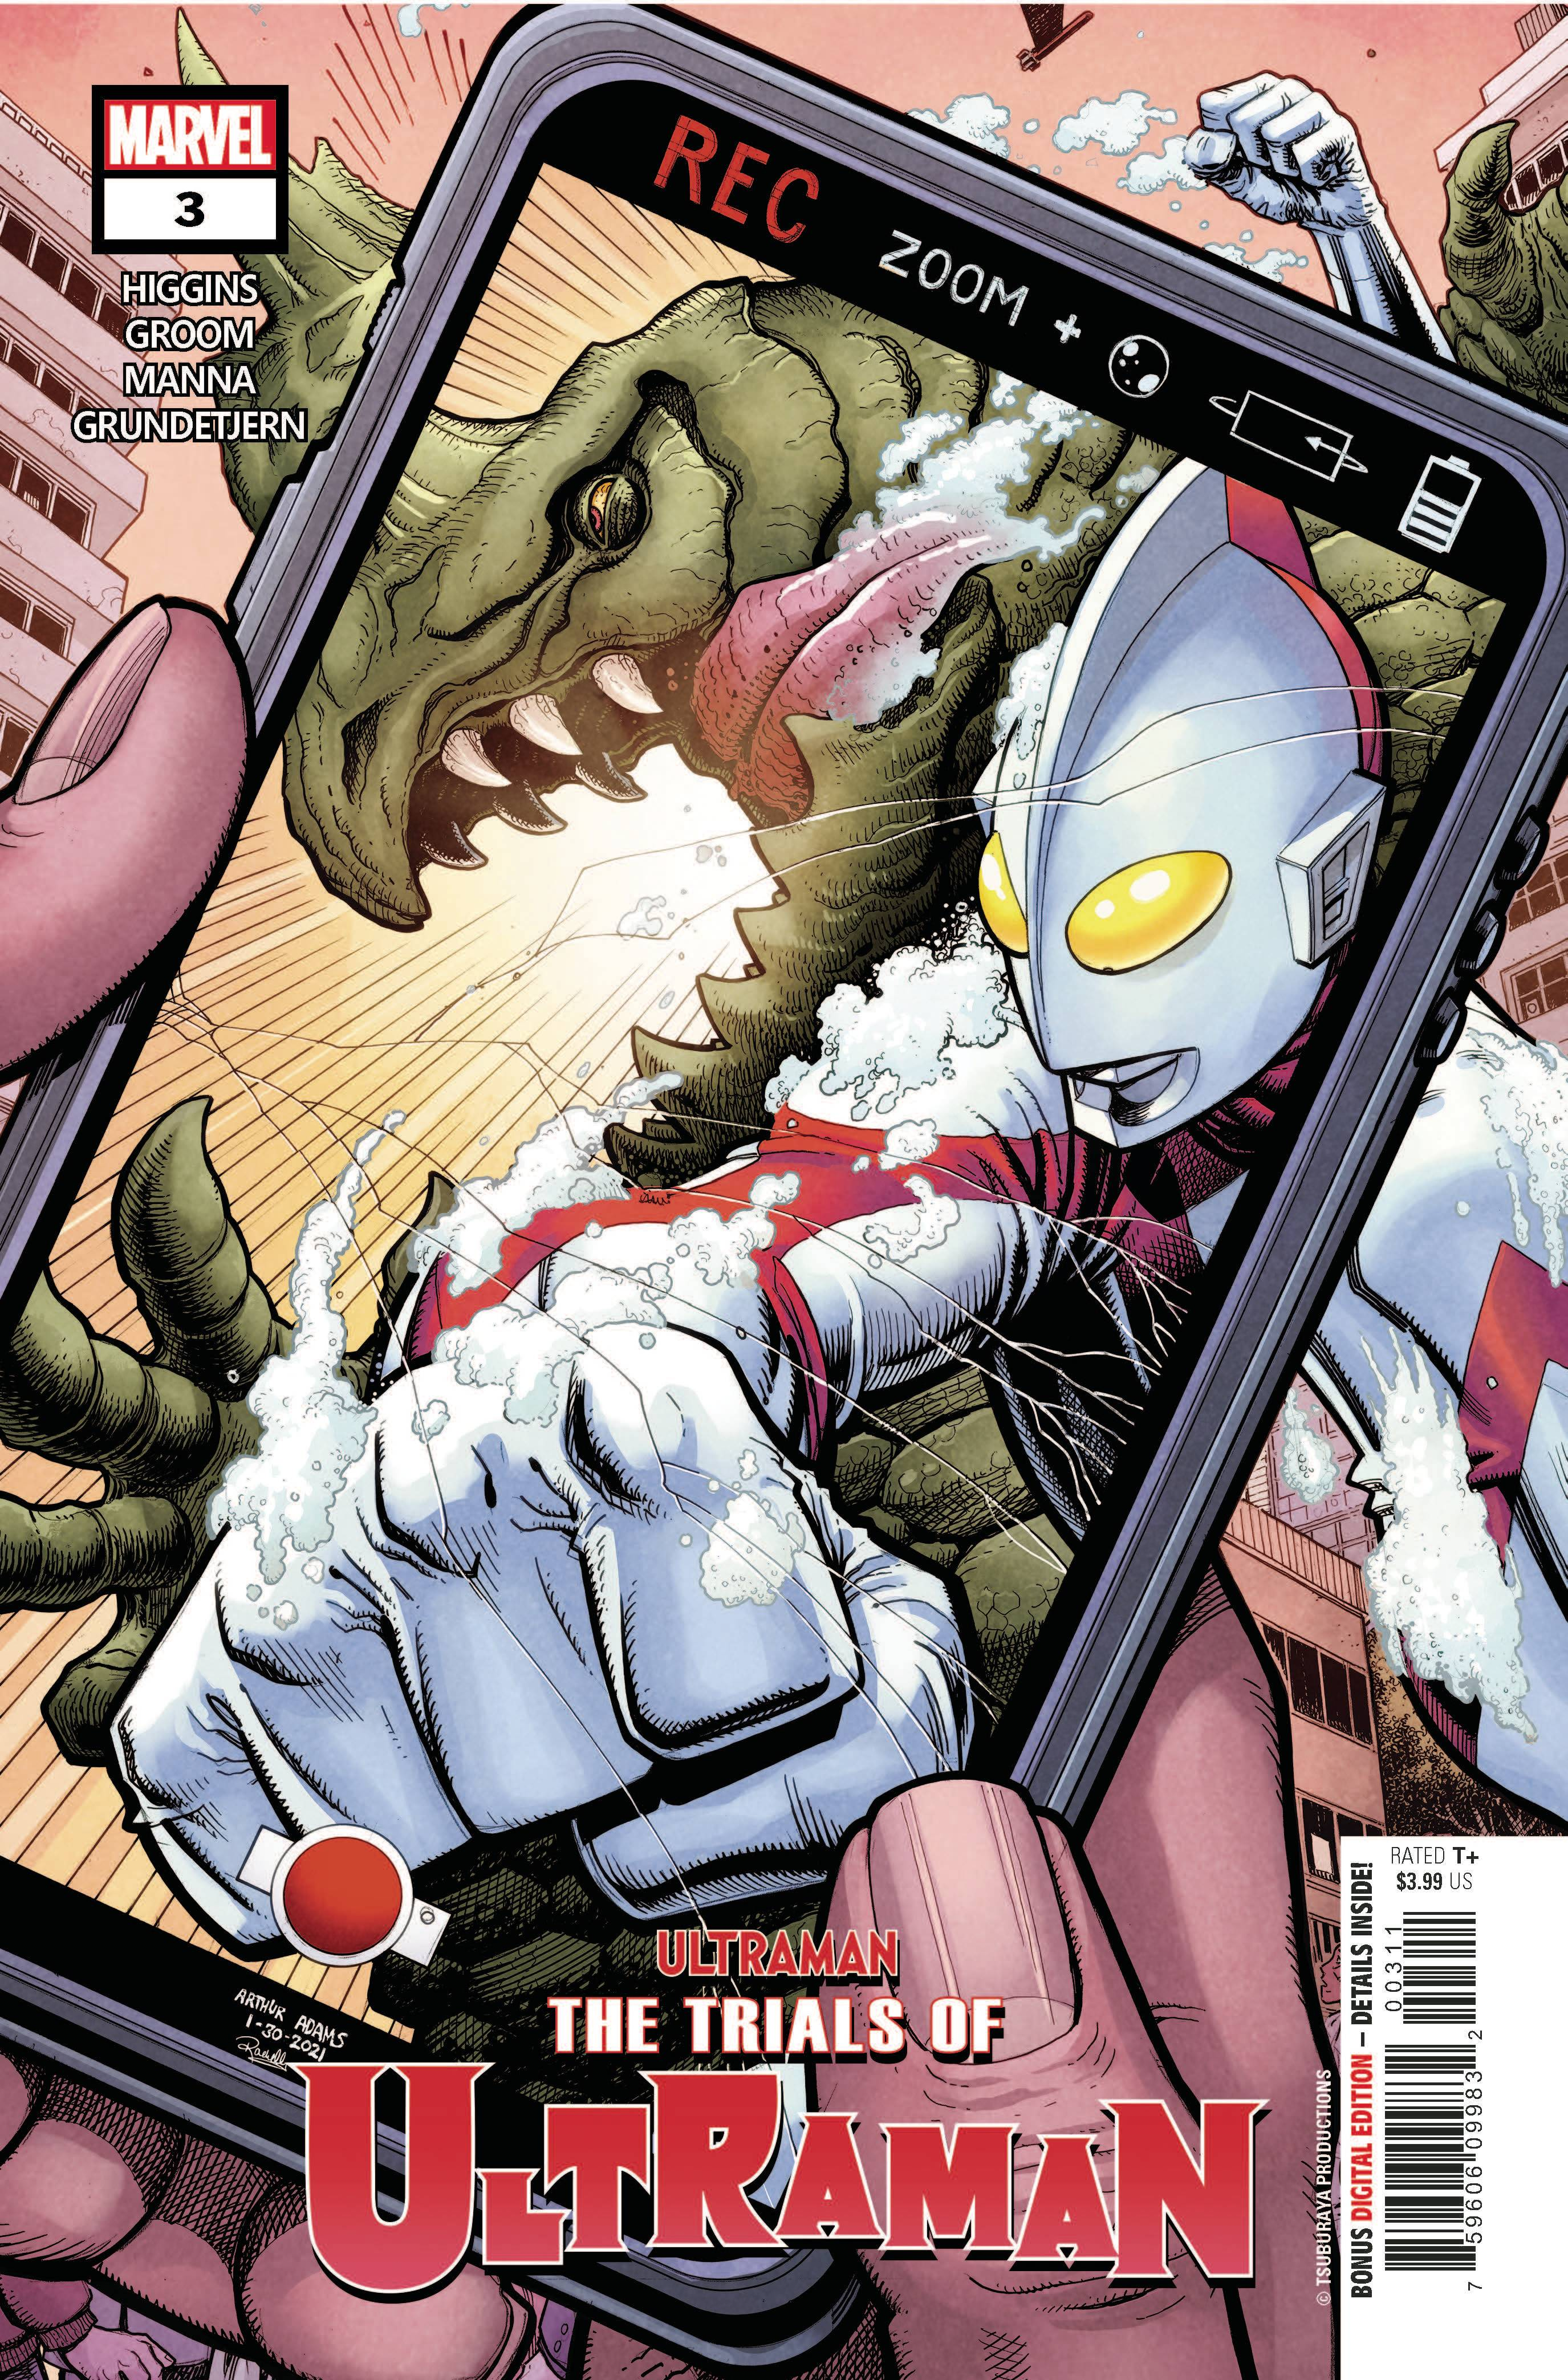 TRIALS OF ULTRAMAN #3 (OF 5)